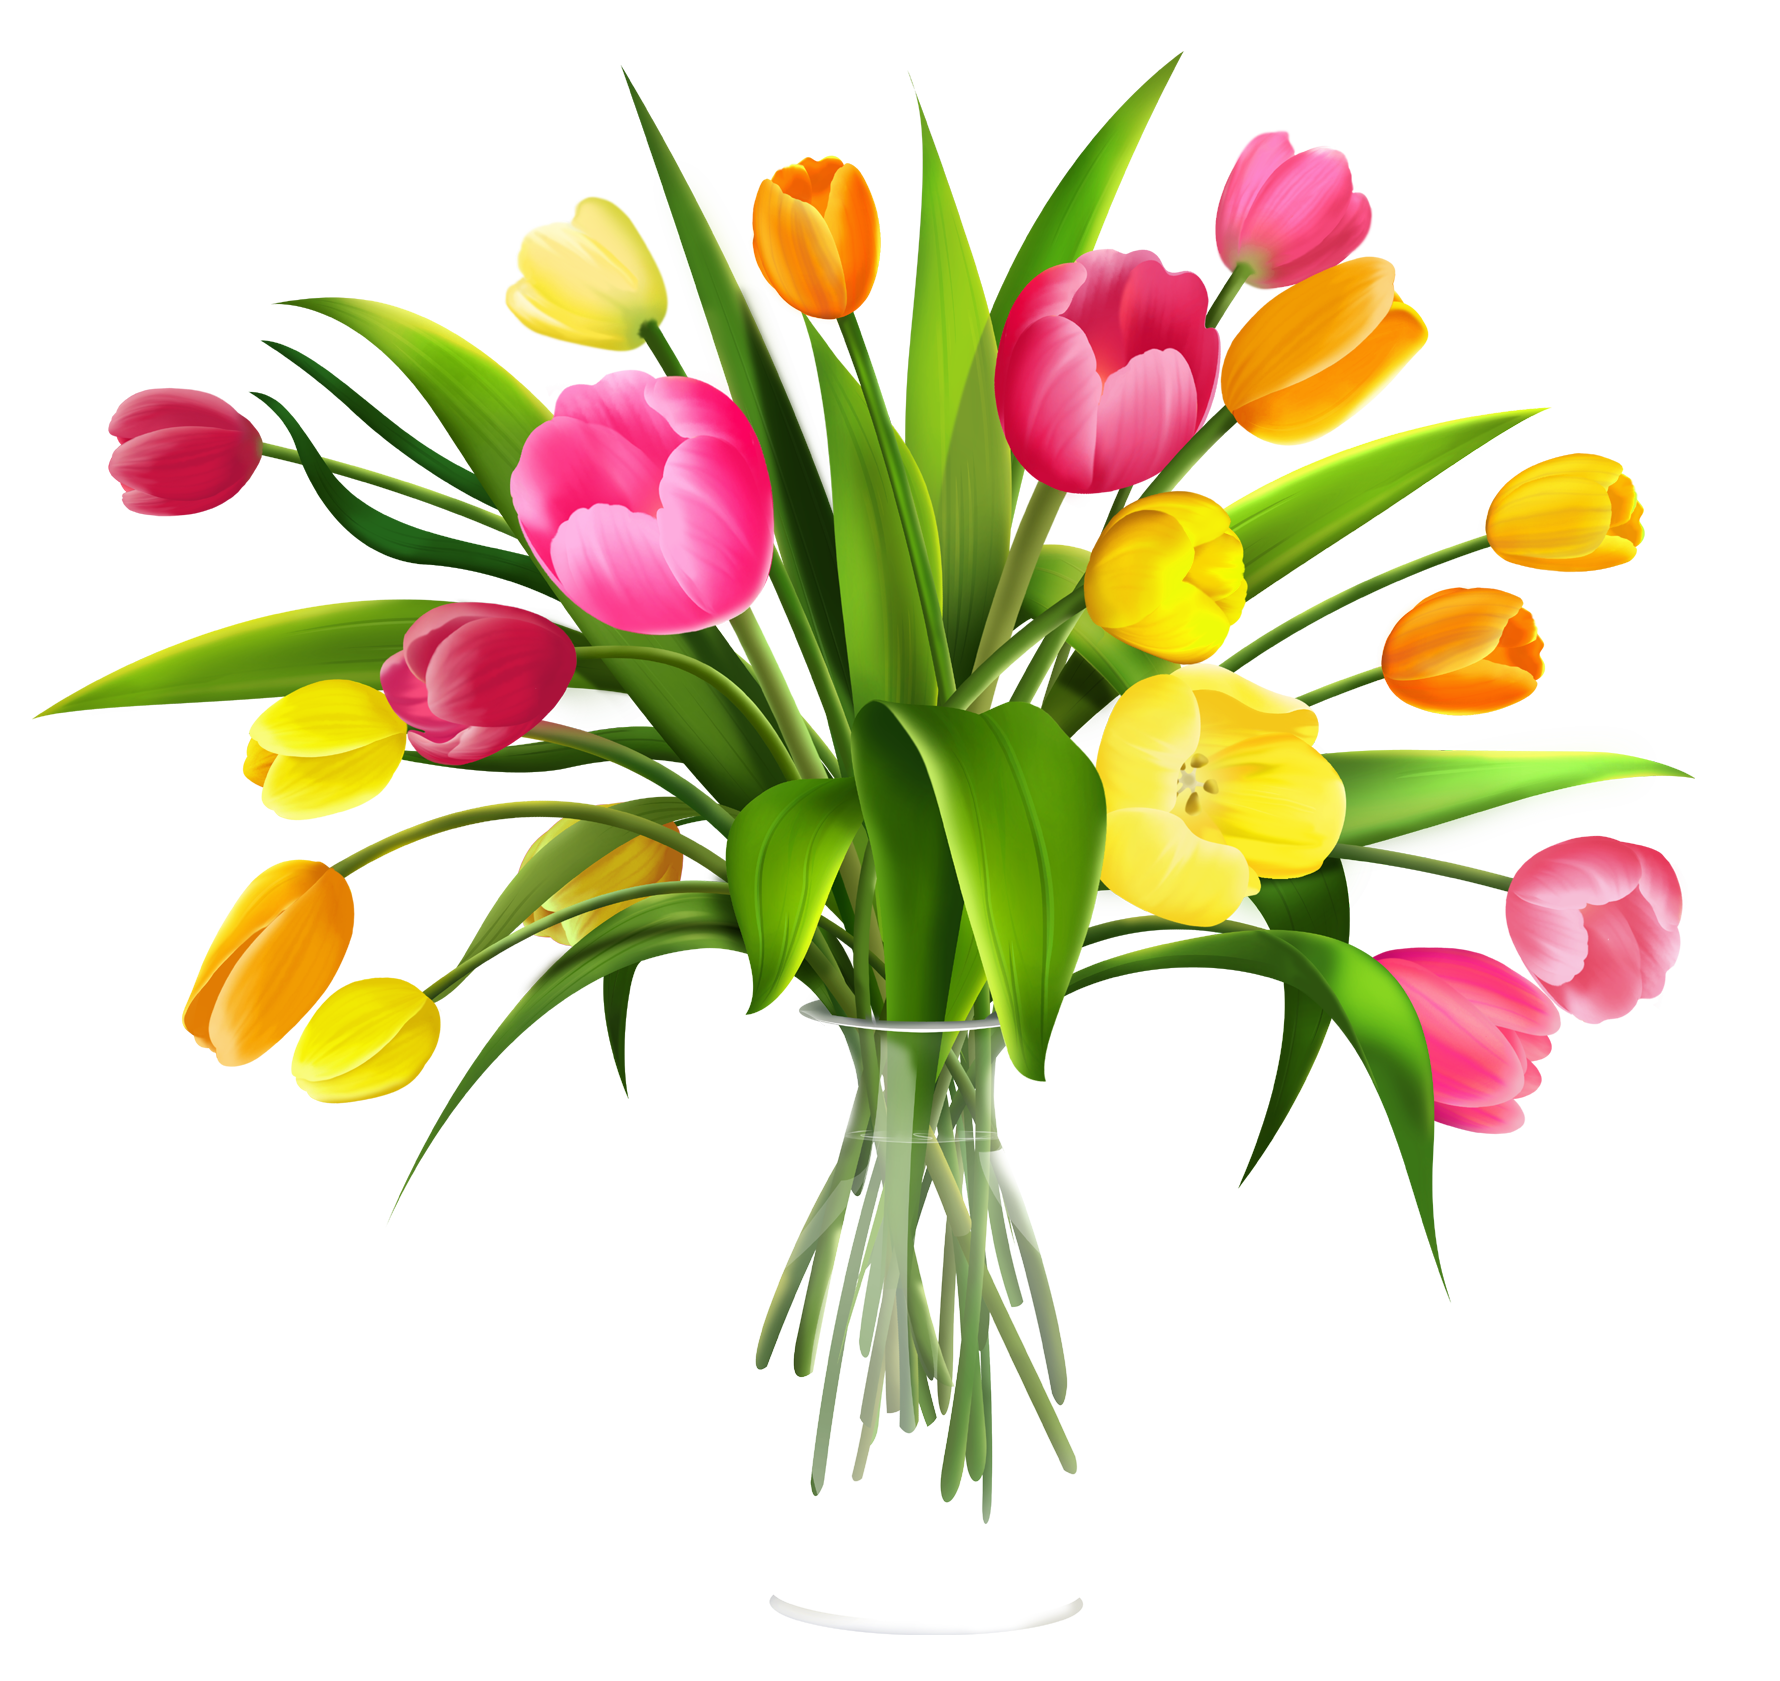 Easter clipart tulip. Vase with tulips png